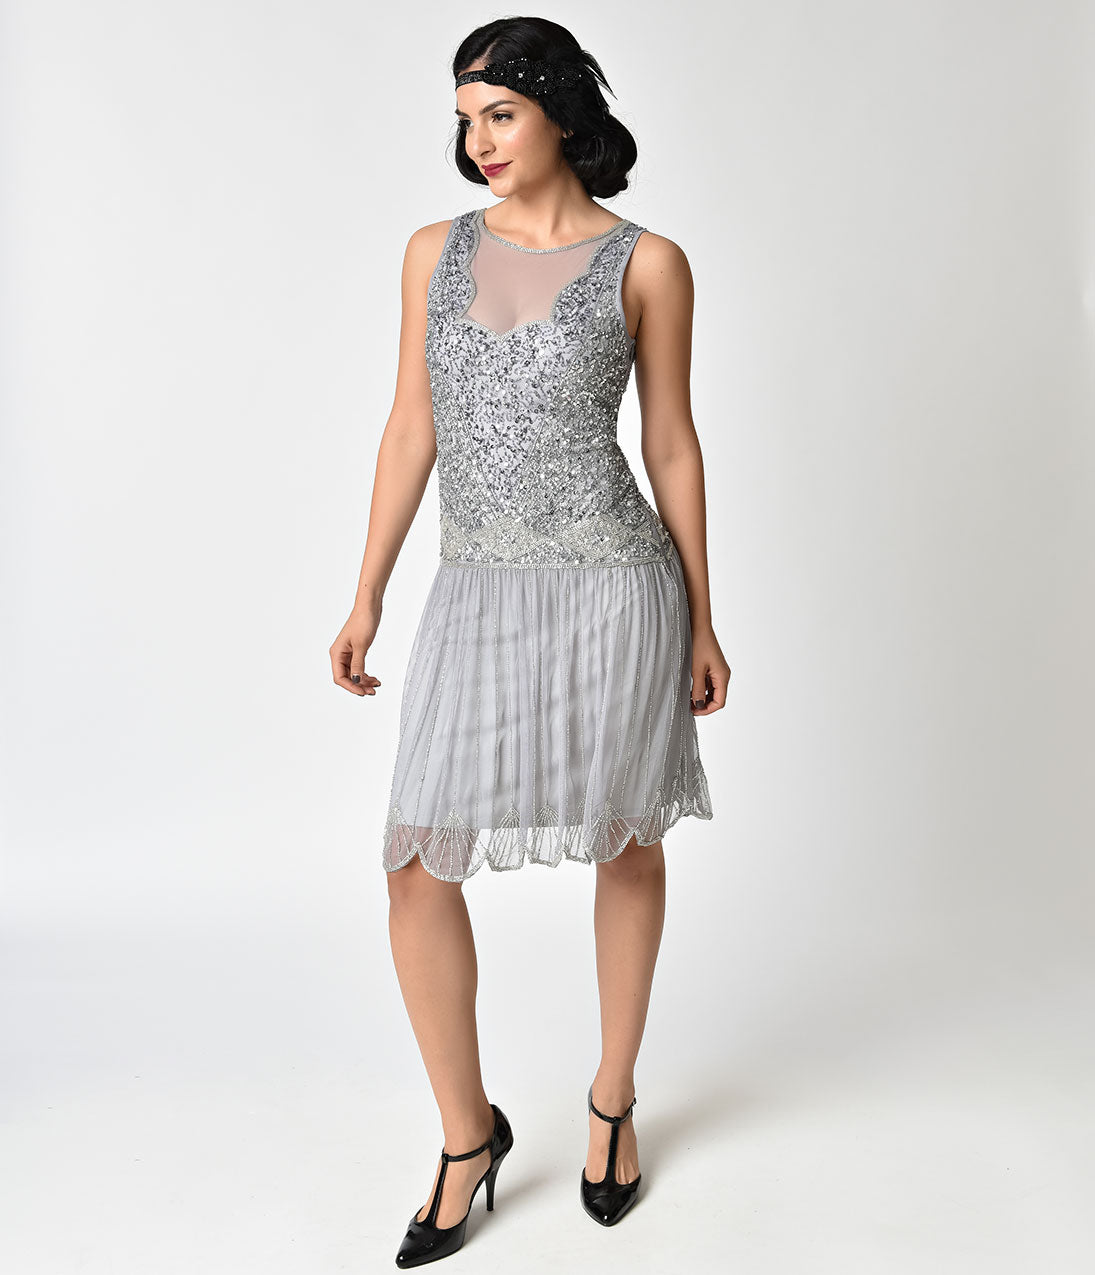 1920s Style Dresses, Flapper Dresses 1920s Style Lilac Beaded Drop Waist Elaina Flapper Dress $71.00 AT vintagedancer.com